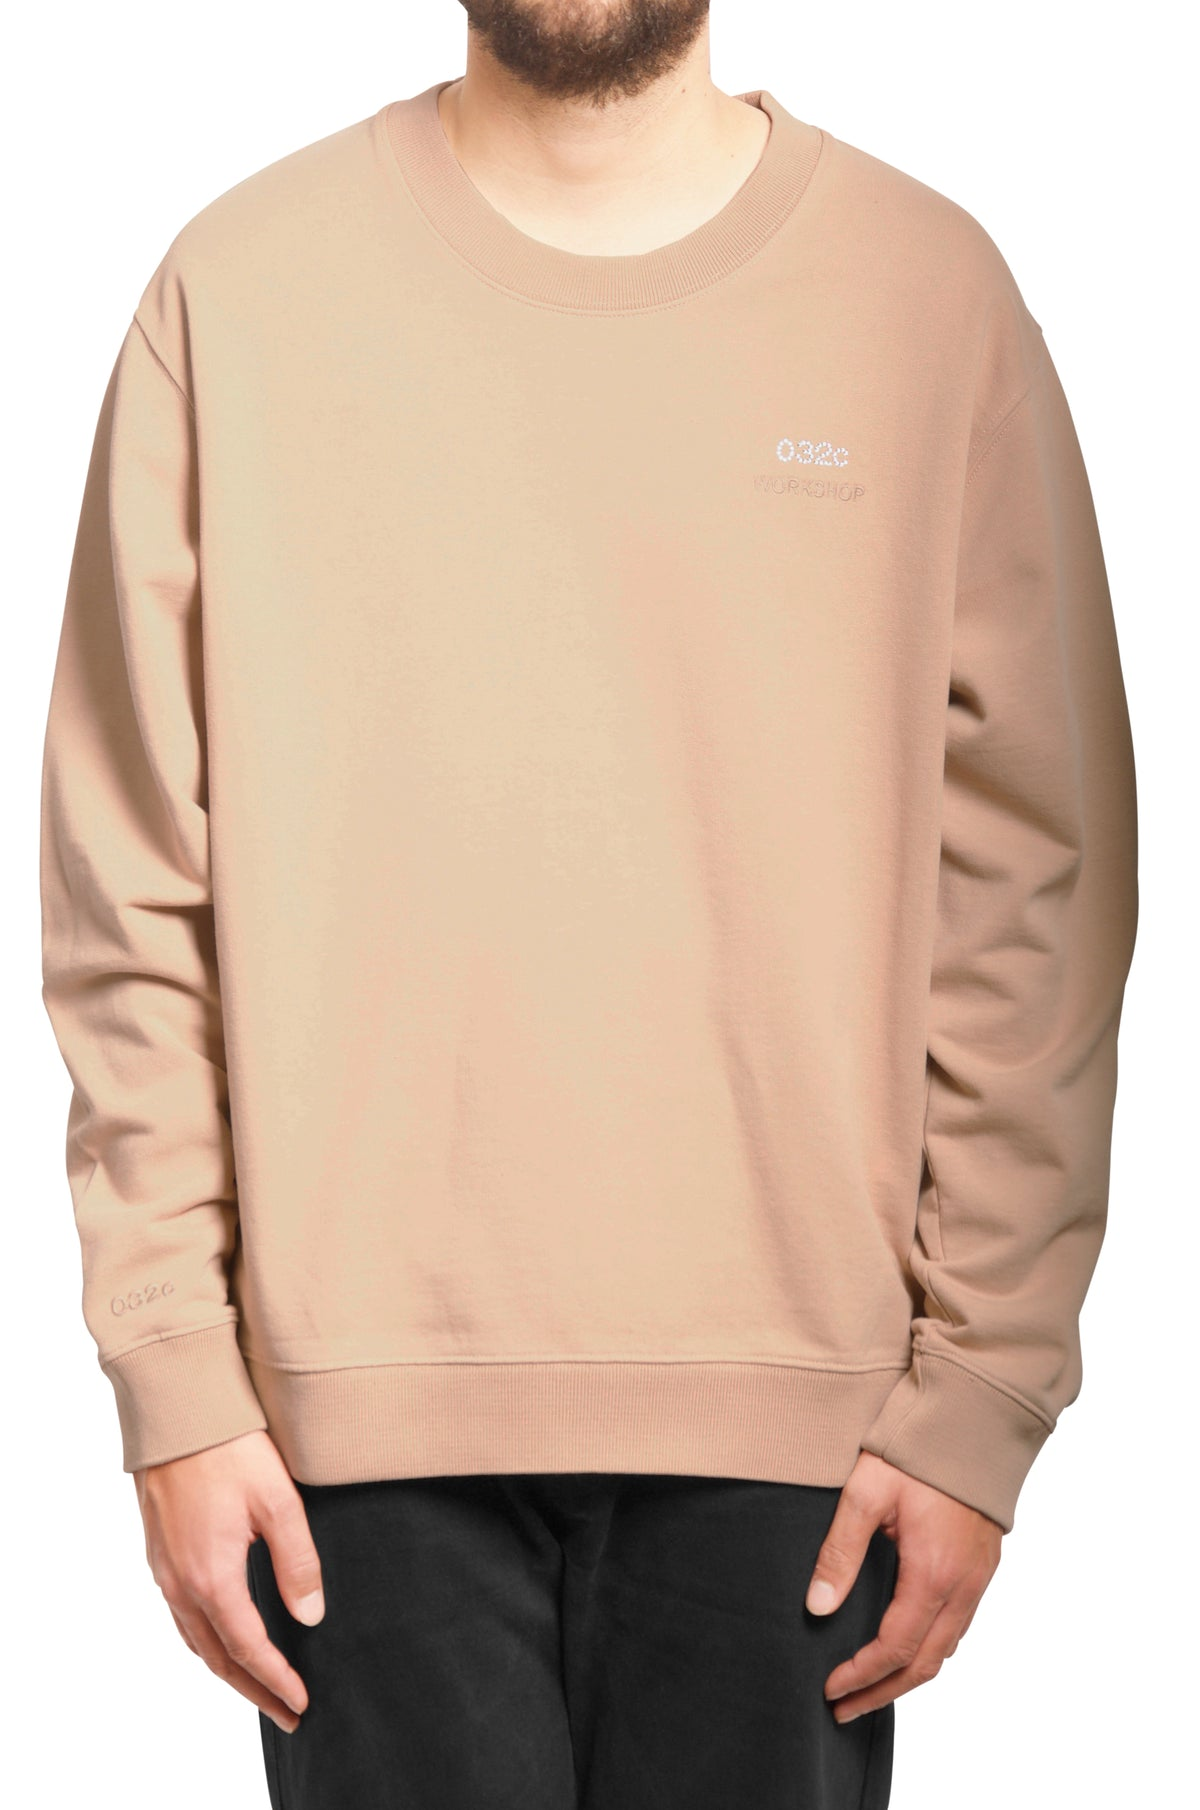 032c Crystal Sweatshirt - 032c